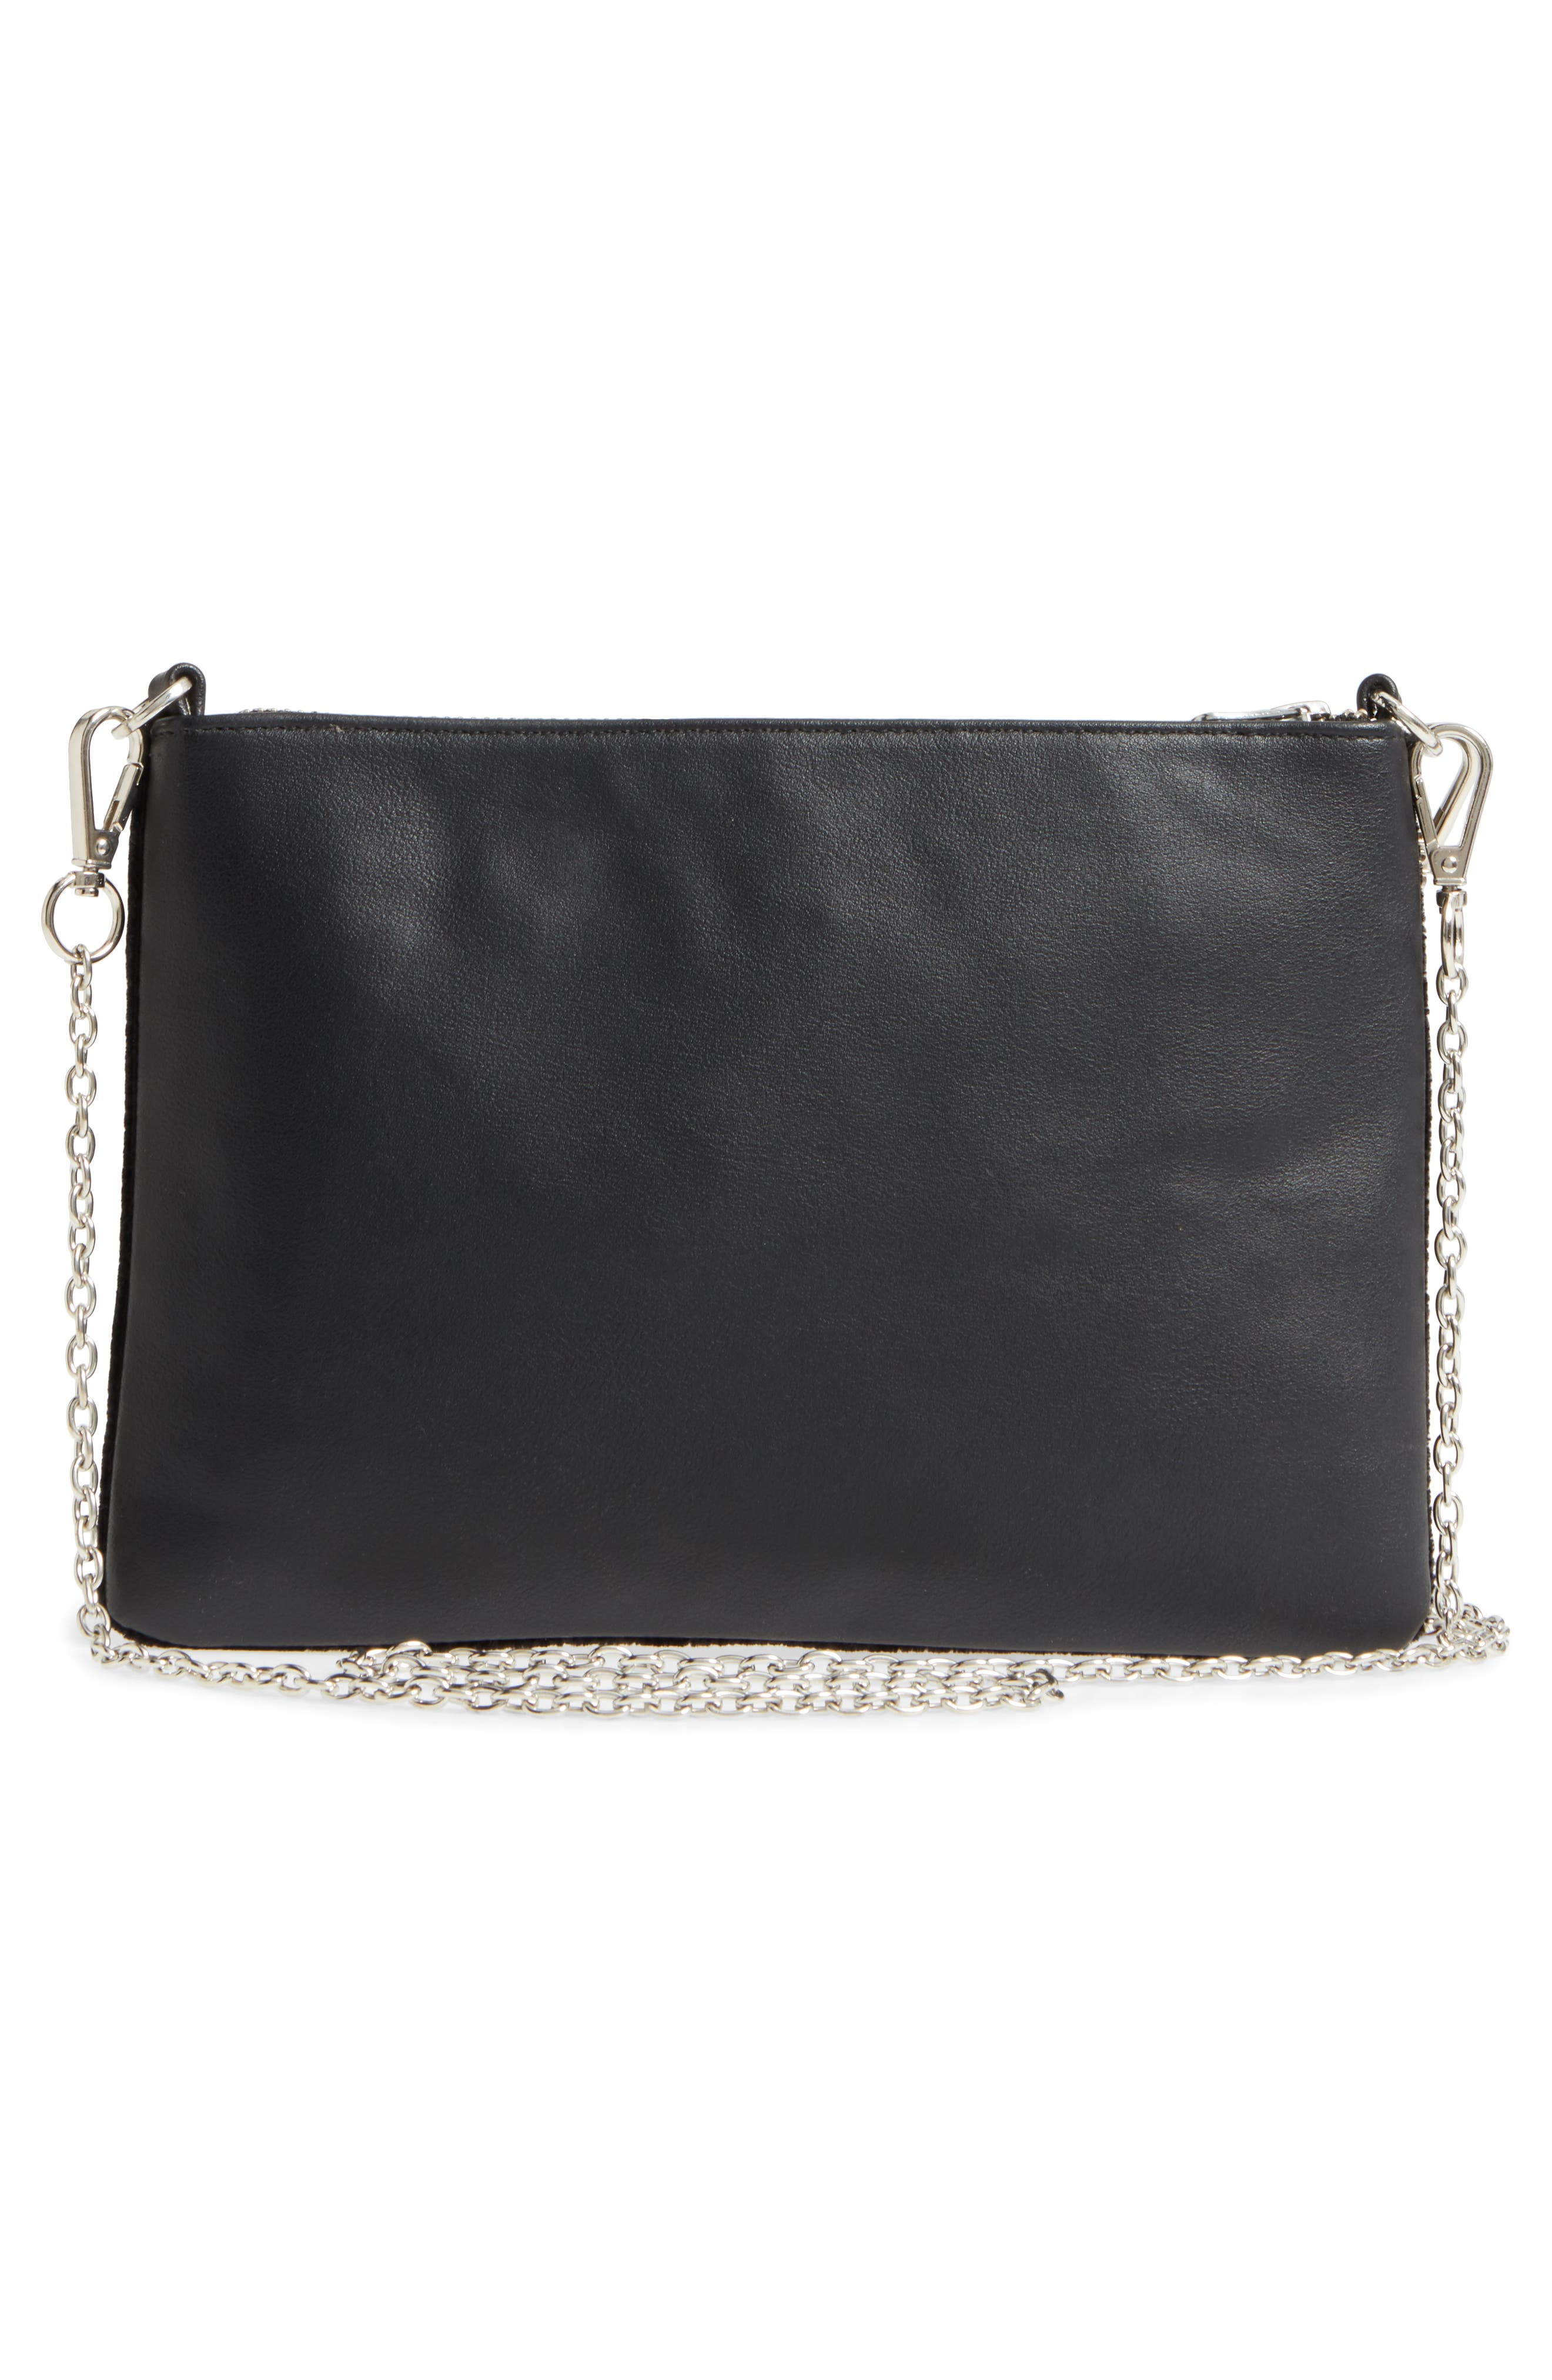 Embellished Faux Leather Clutch,                             Alternate thumbnail 3, color,                             960